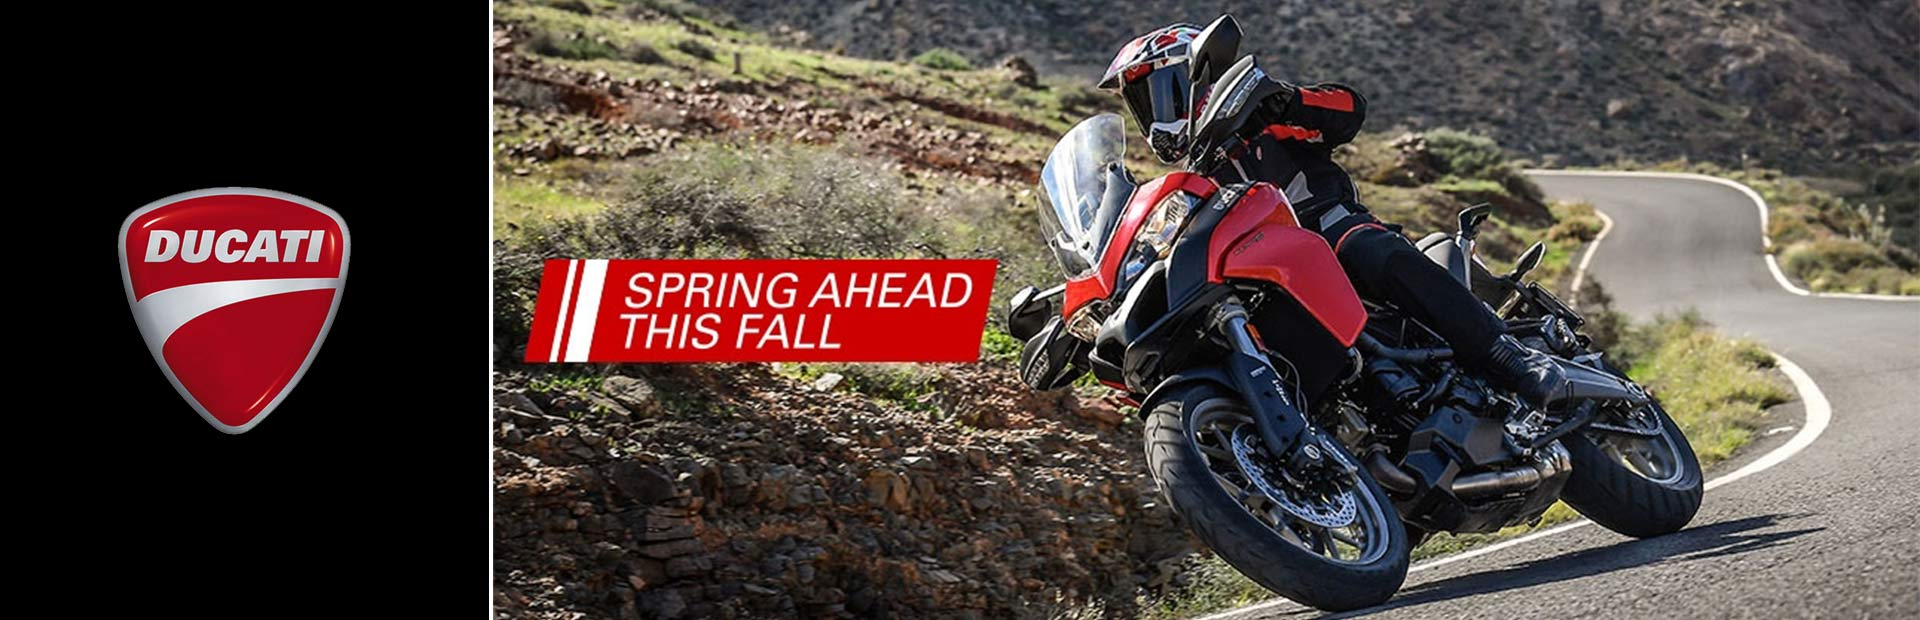 Ducati: Spring Ahead This Fall